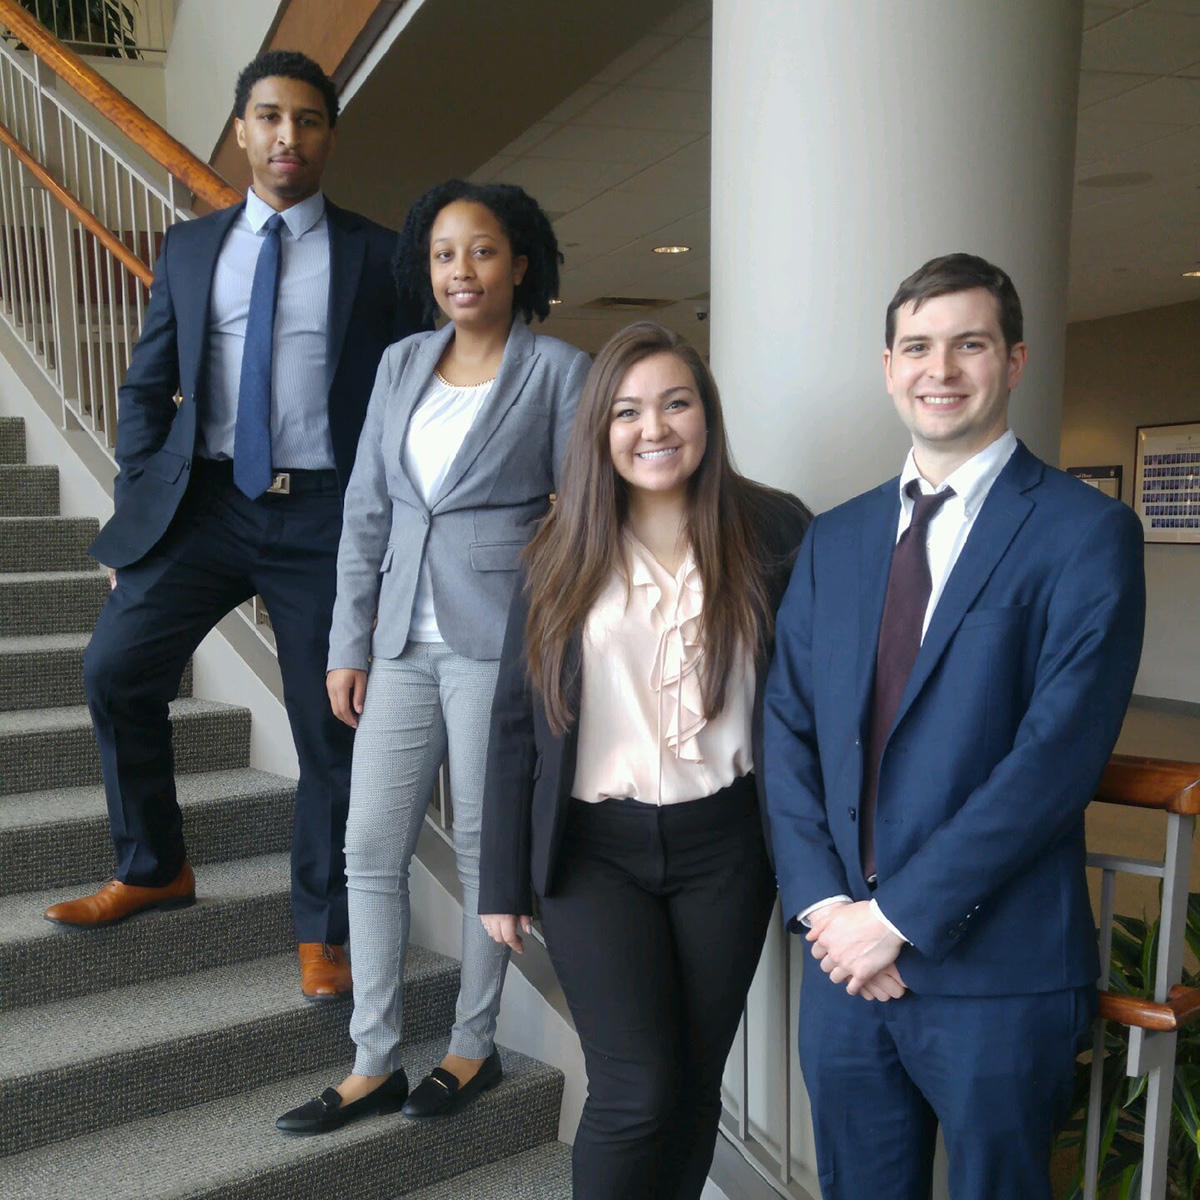 Justin Taylor '19, Imani-Ari Asanté '19, Presley Valenzuela '18 and Michael Brew, Chicago-Kent's ABA Negotiation Competition regional teams